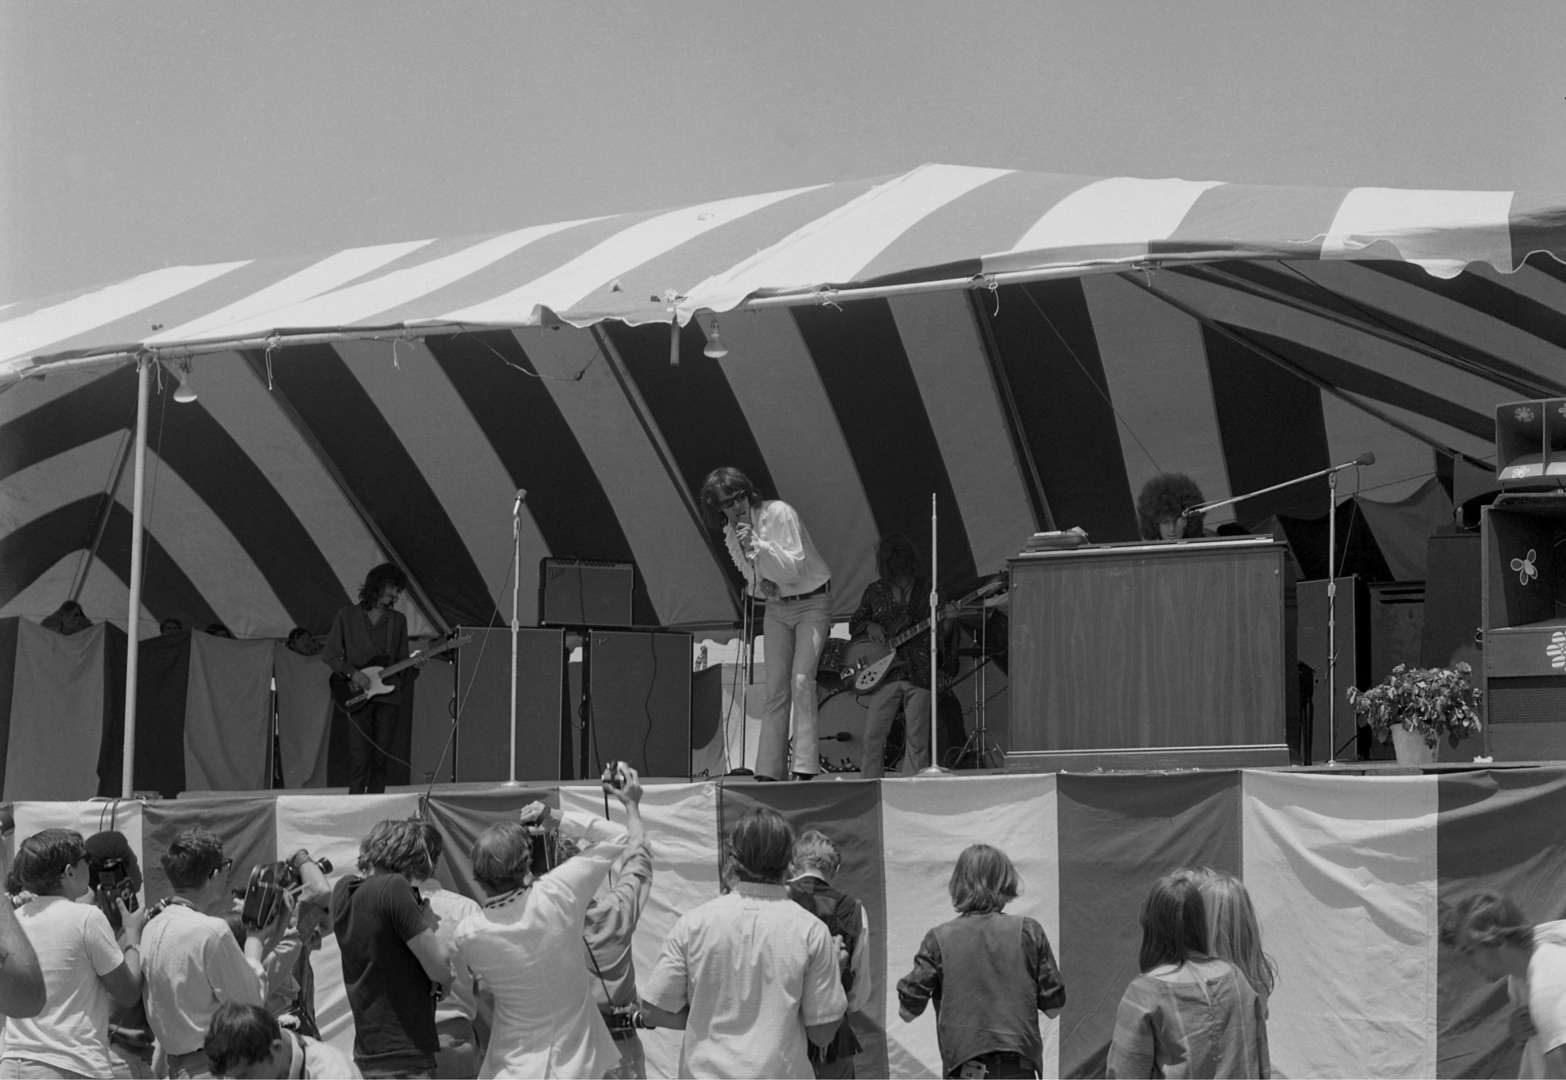 Slide 13 of 45: COSTA MESA - AUGUST 3: Rock and Roll band Steppenwolf (L-R Michael Monarch, John Kay, Rushton Moreve and Goldy McJohn) perform at the Newport Pop Festival on August 3, 1968 in Costa Mesa, California.